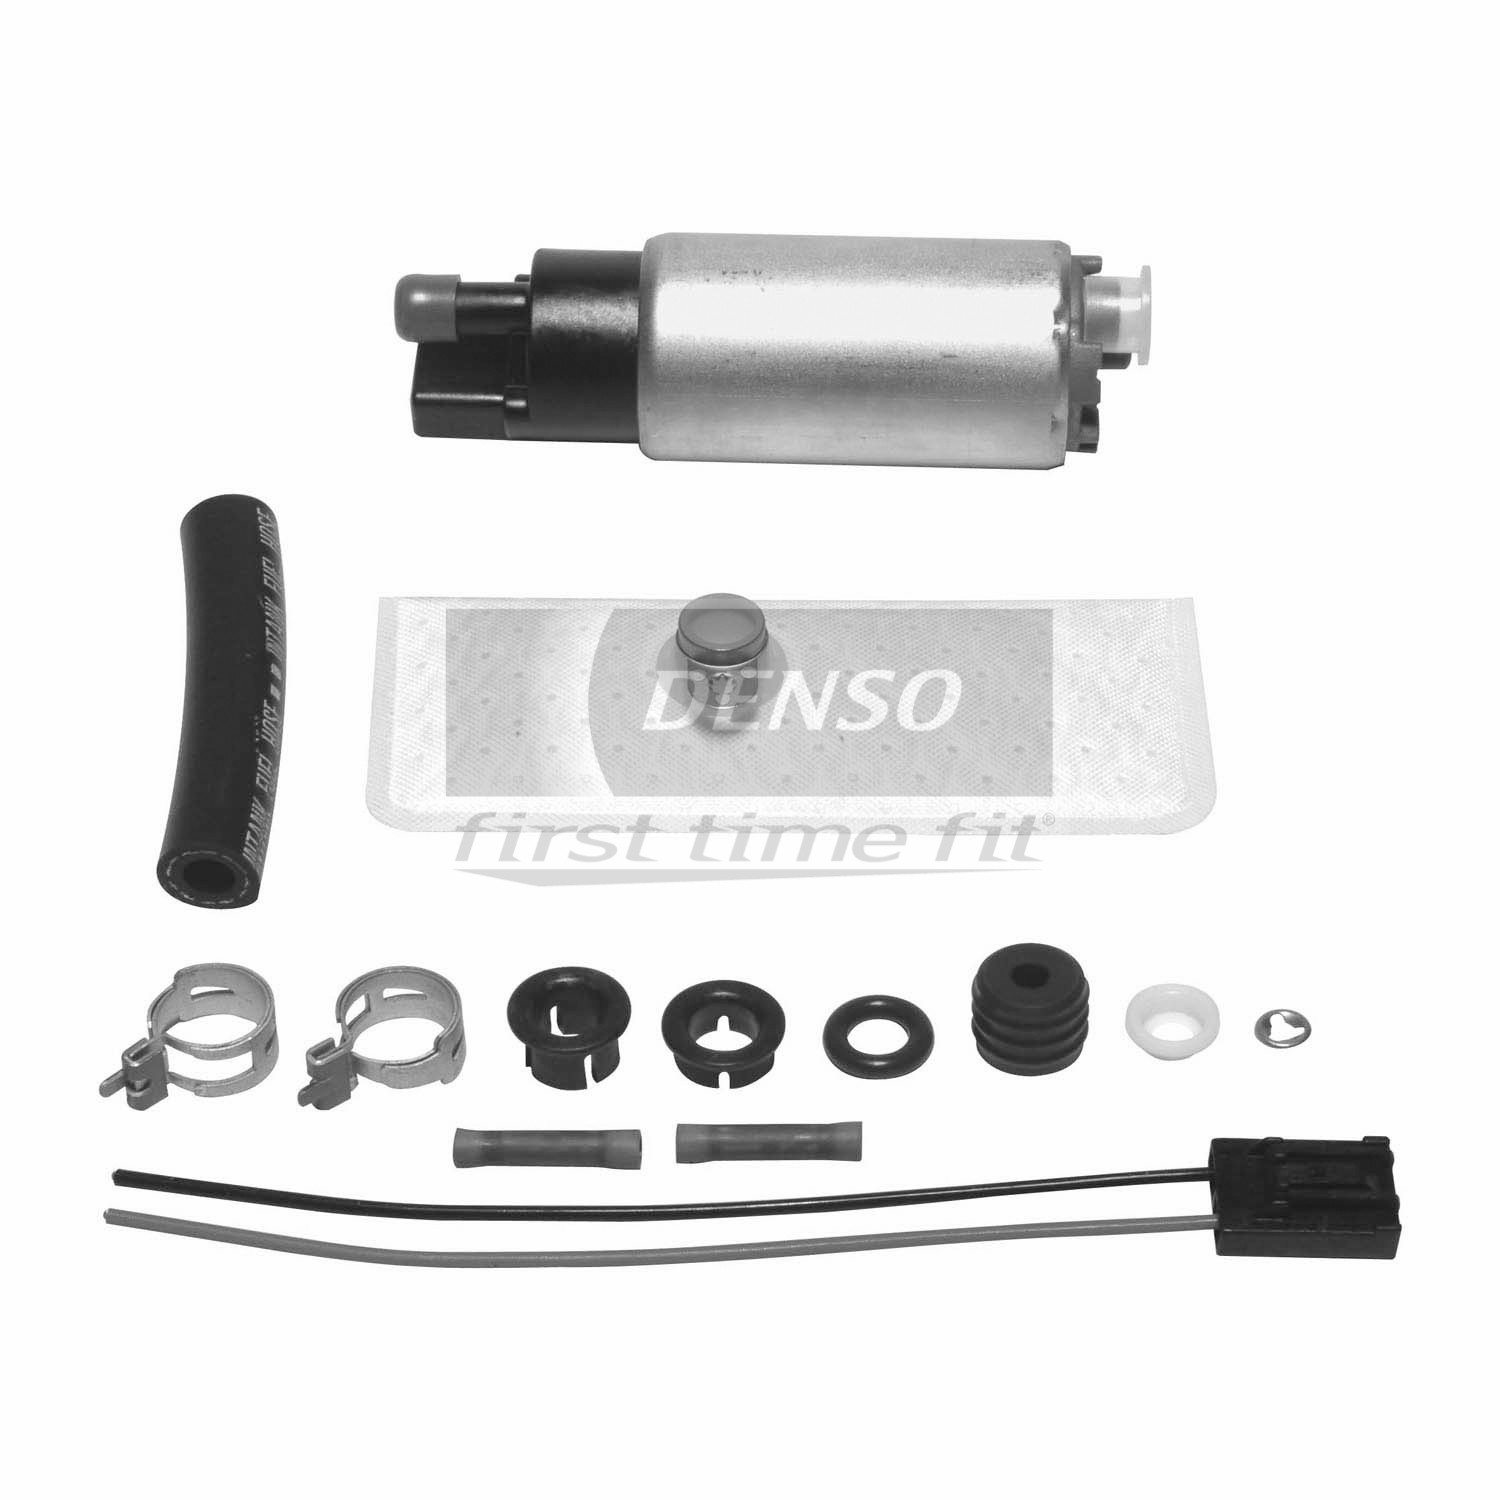 Denso 9500172 Fuel Pump and Strainer Set Fits 1997-1999 Ford Econoline Super Duty